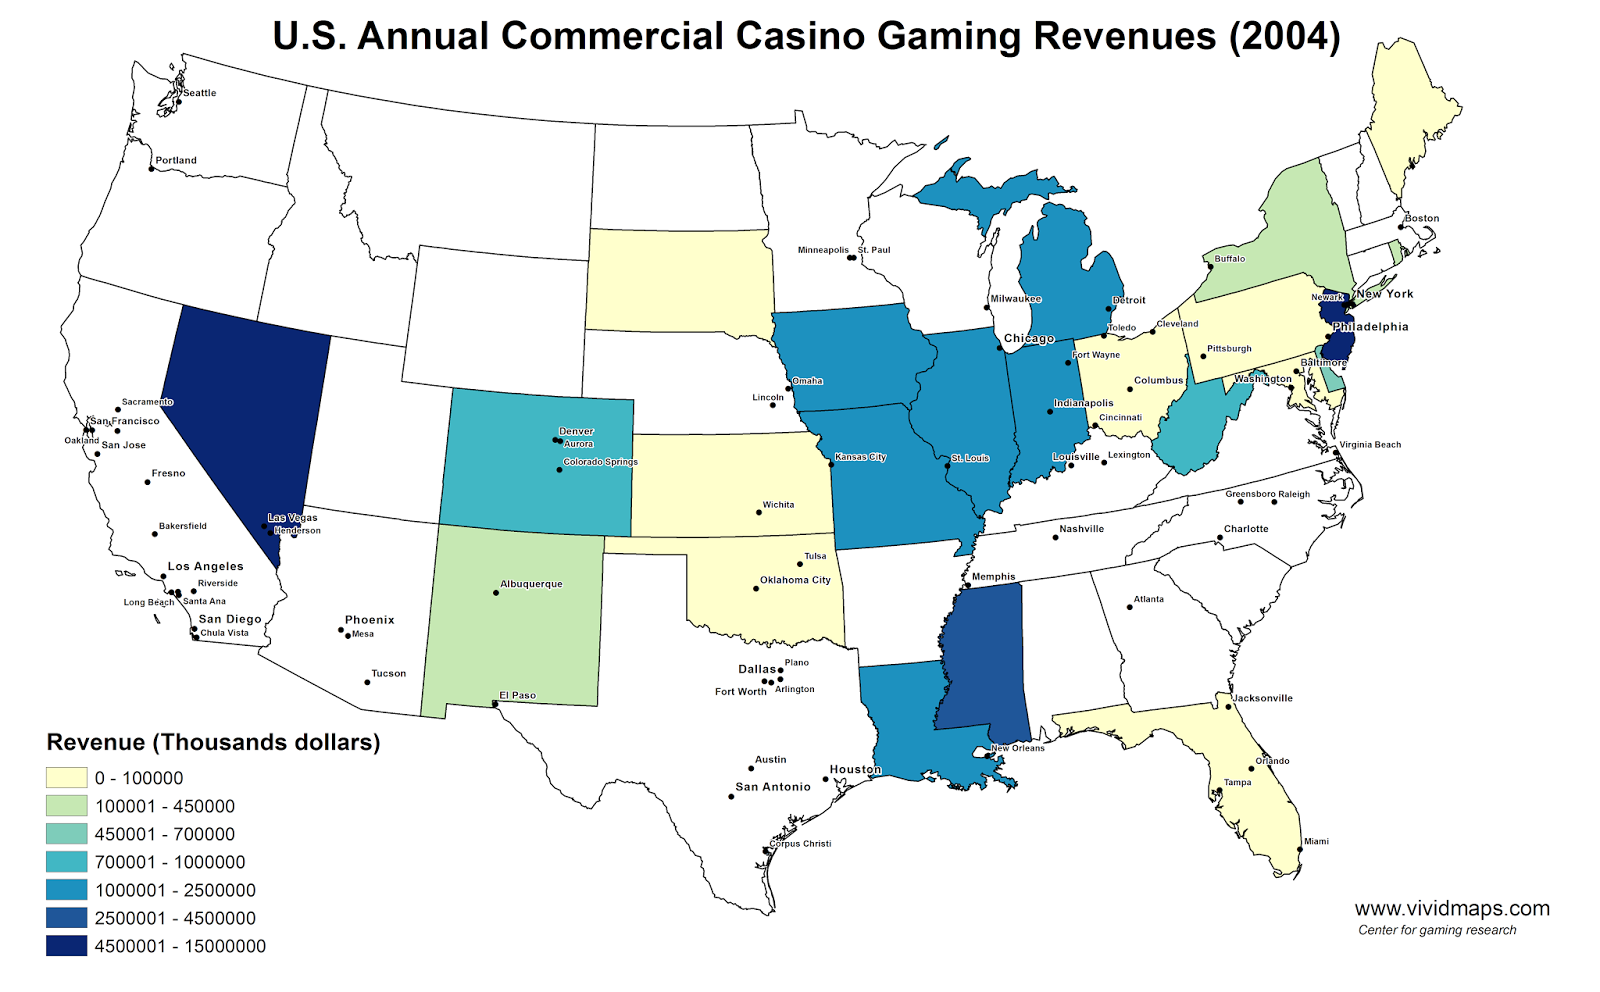 U.S. Annual Commercial Casino Gaming Revenues (2004)